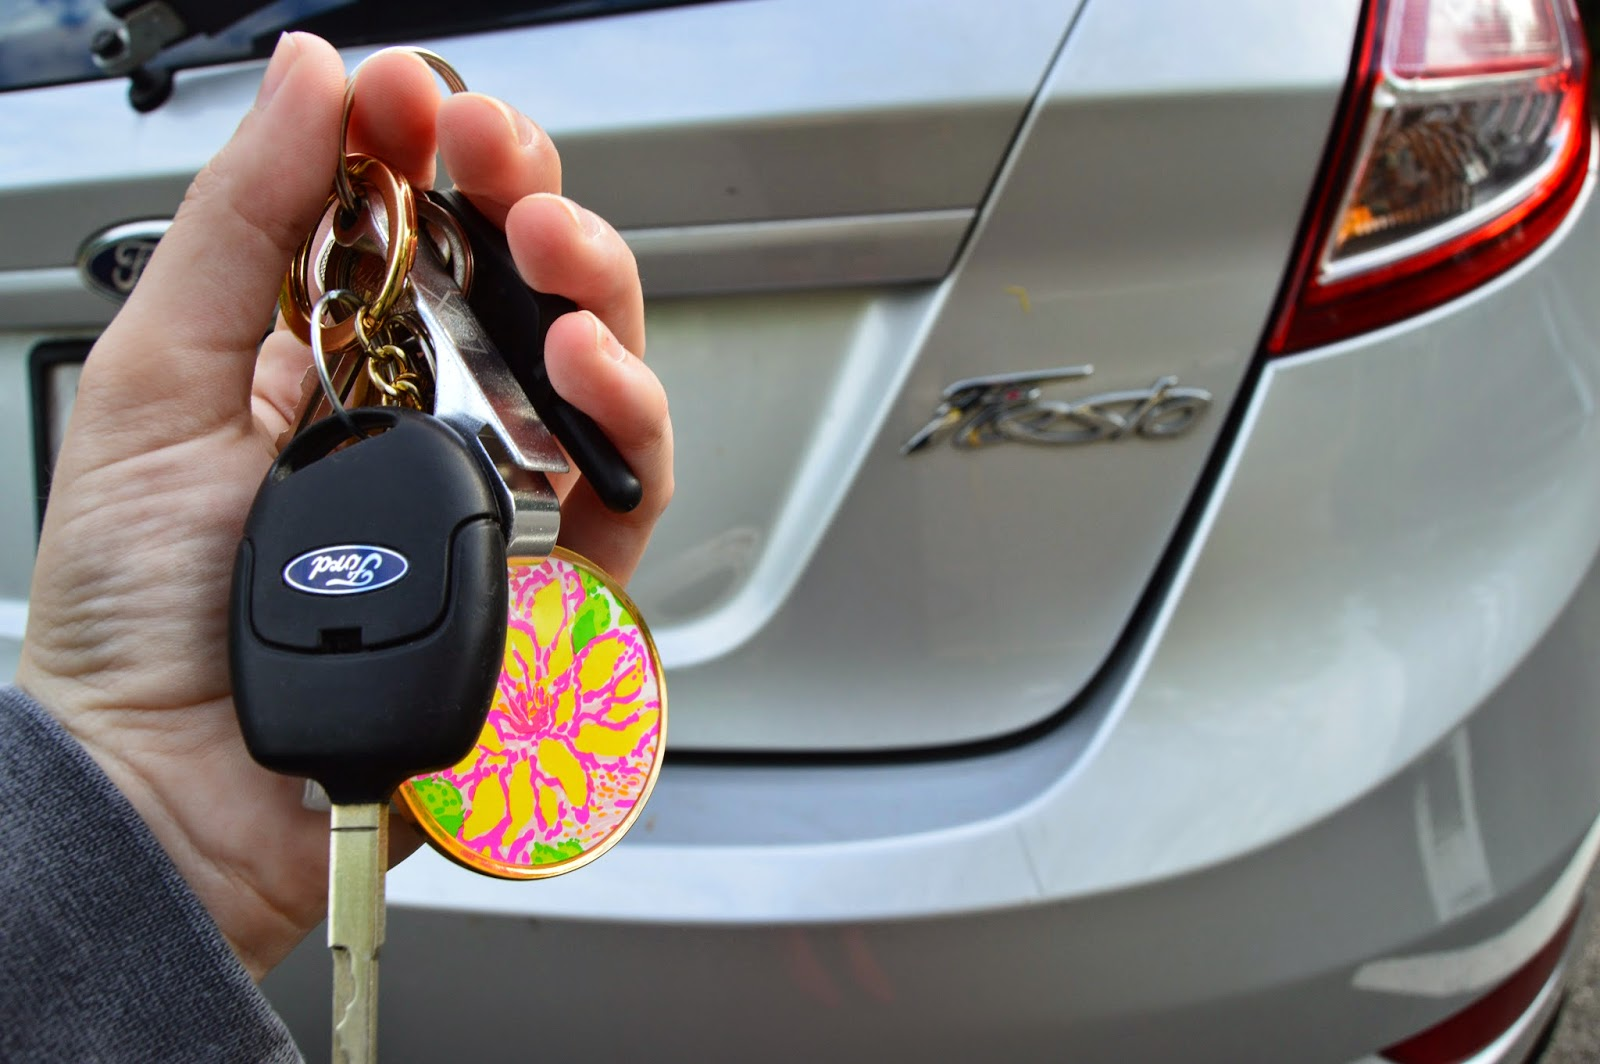 Ford Fiesta 2014, Lilly Pulitzer